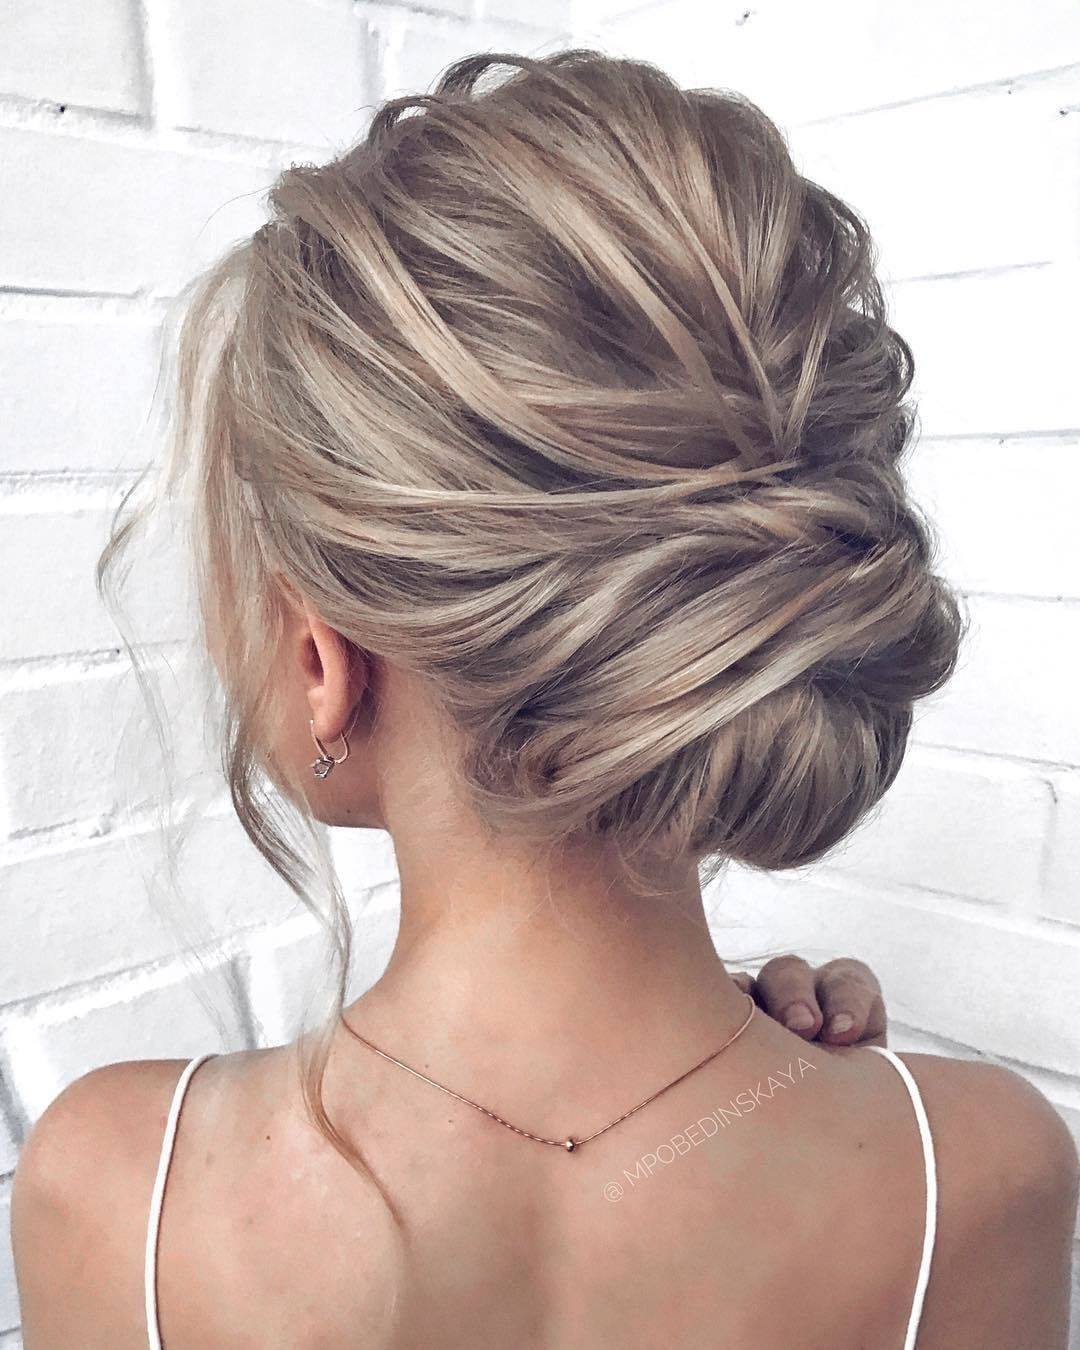 updo hairstyles for prom, wedding or etc. 2019 - page 5 of